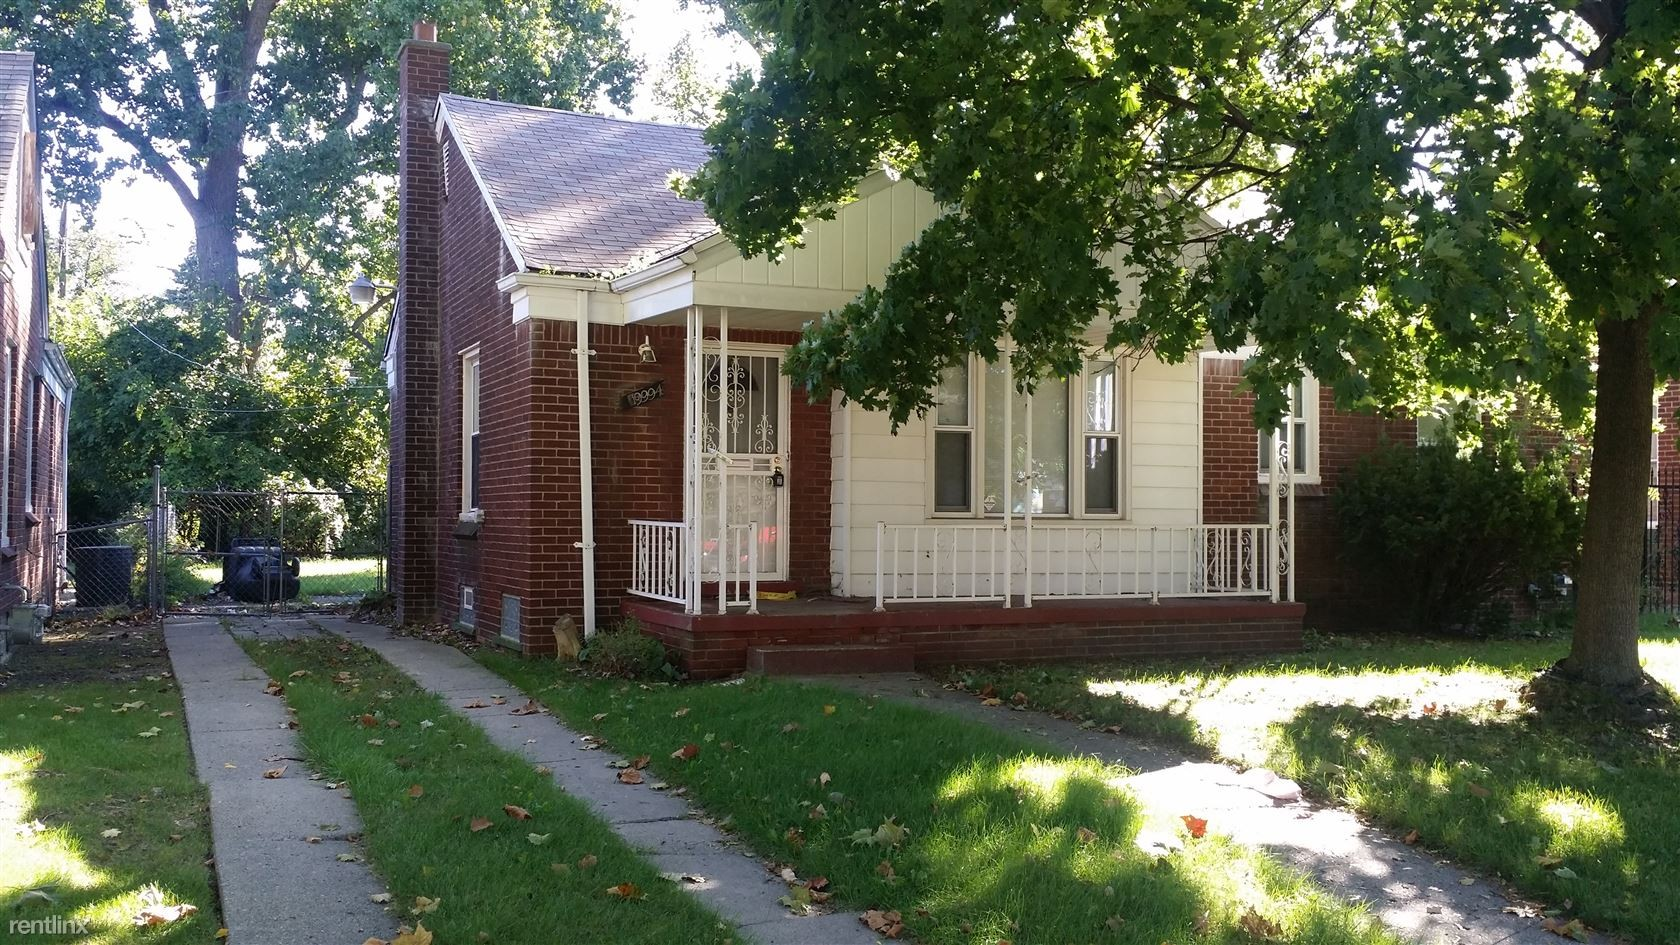 19994 Mark Twain St Detroit Mi 48235 3 Bedroom House For Rent For 825 Month Zumper